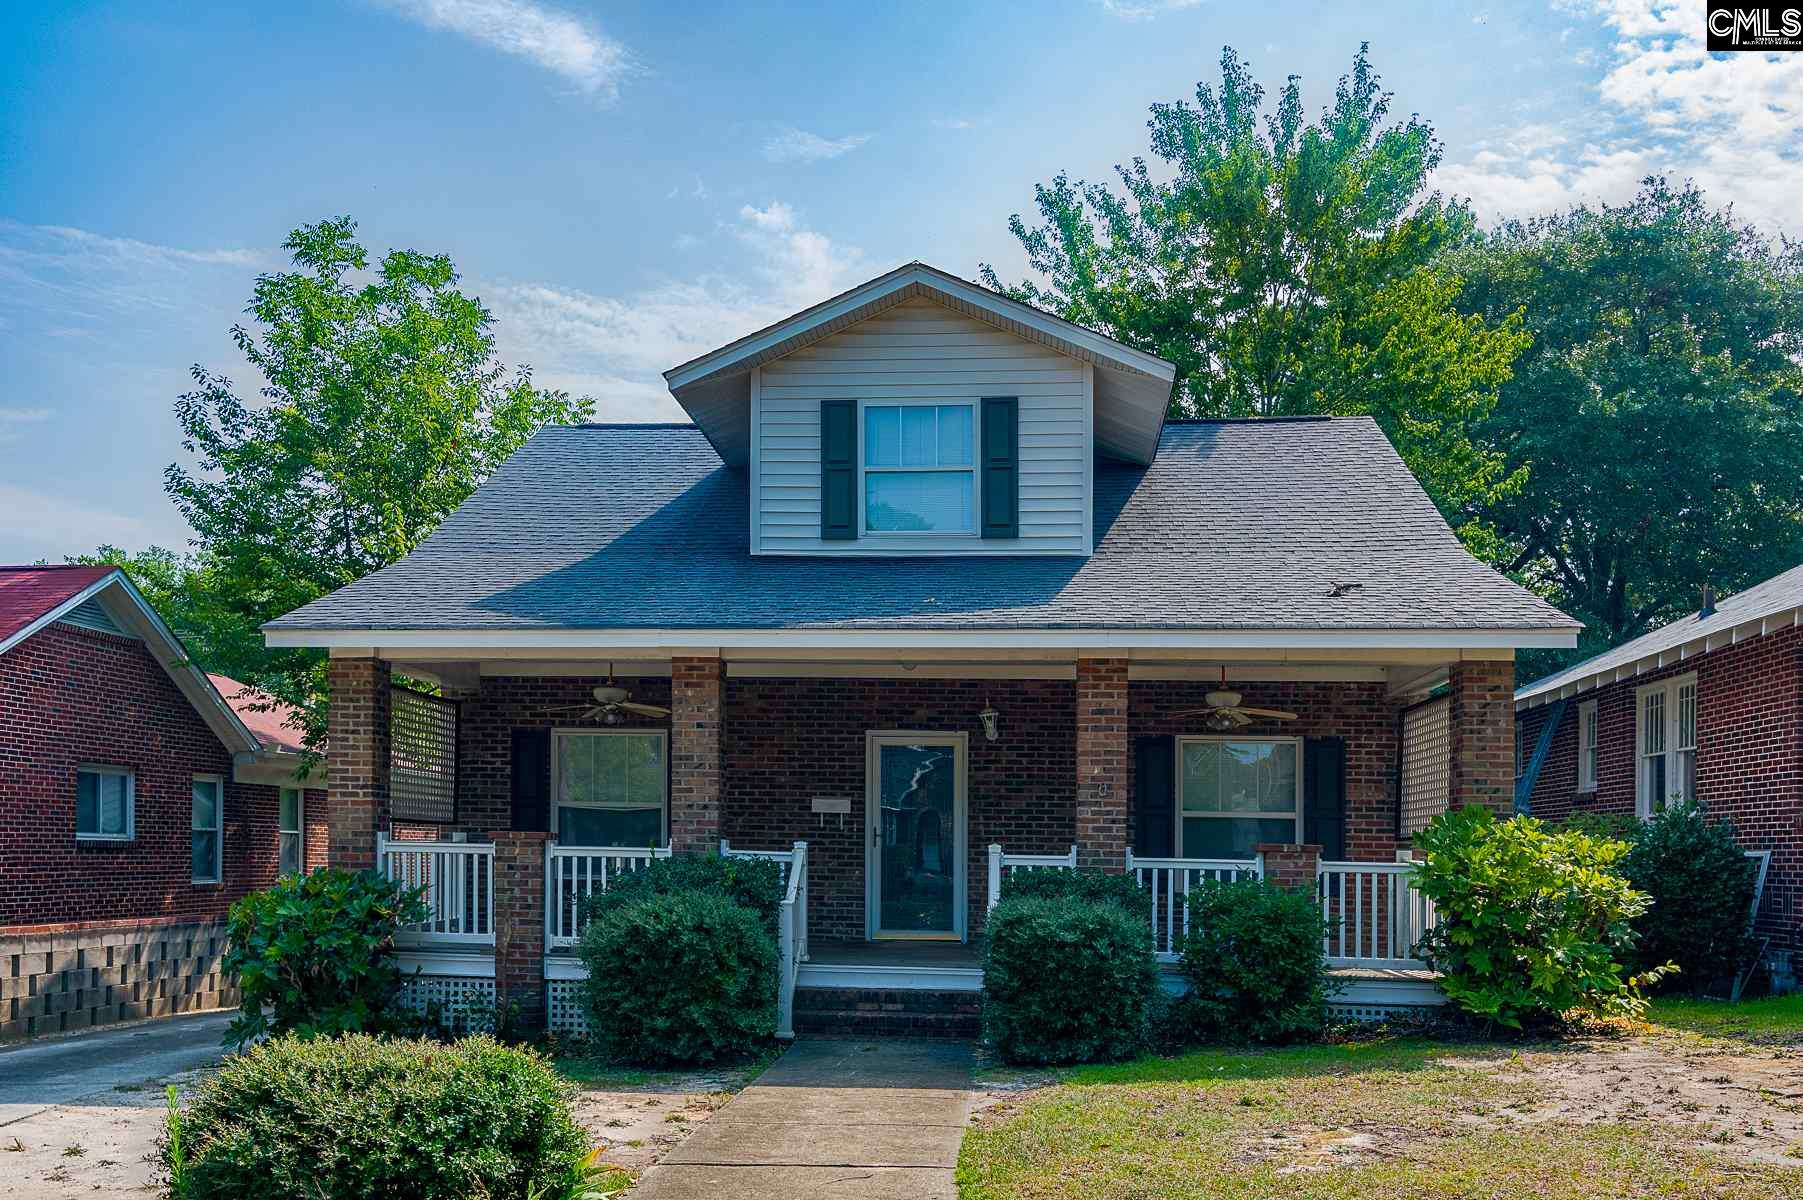 126 S Shandon Columbia, SC 29205